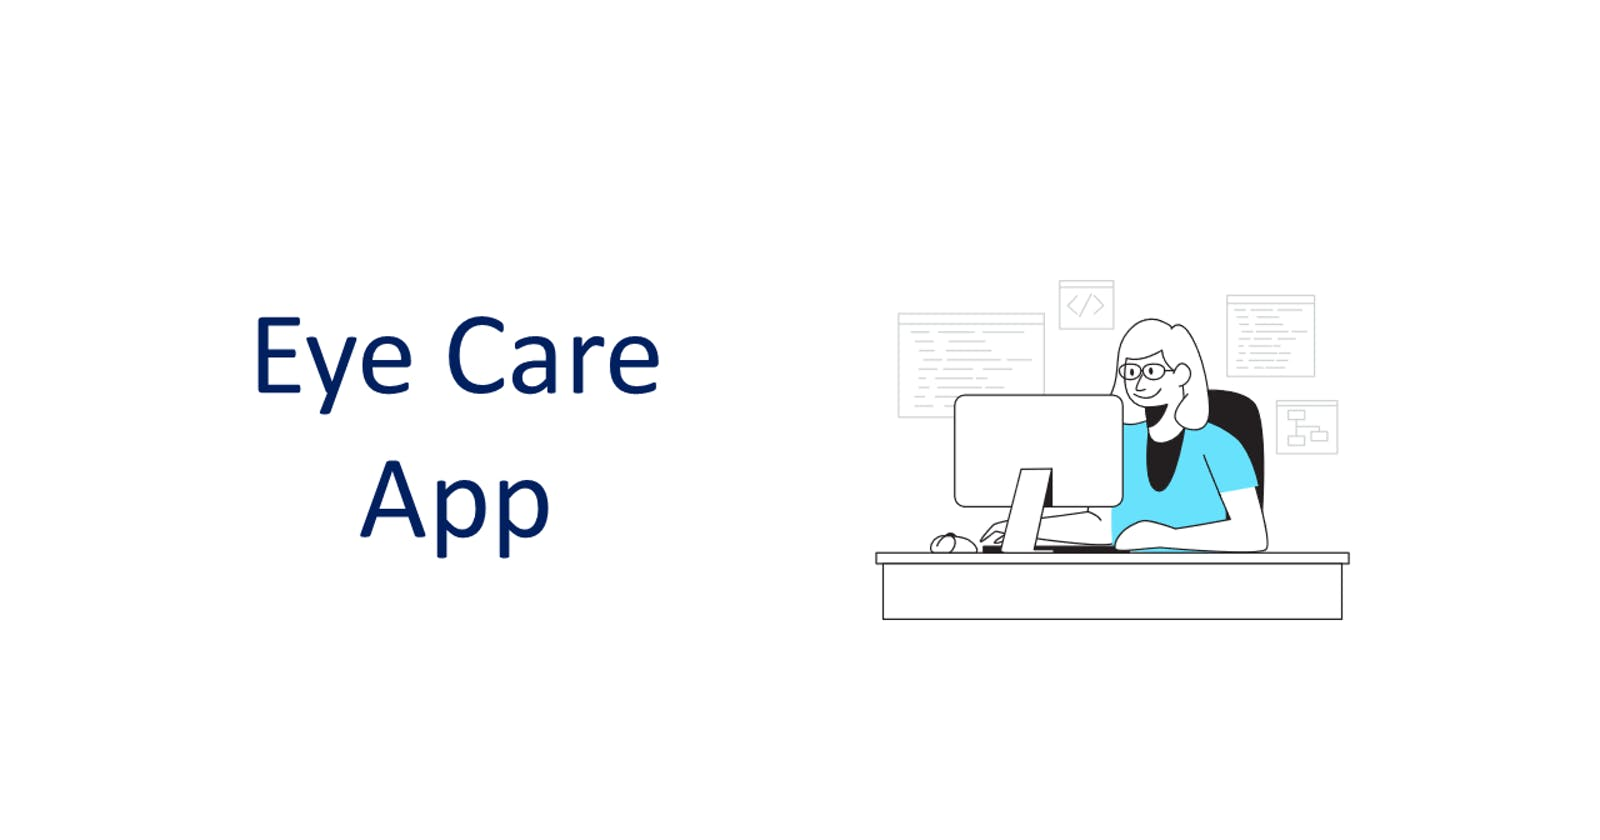 Eye Care - An app that will help you to take care of your eyes